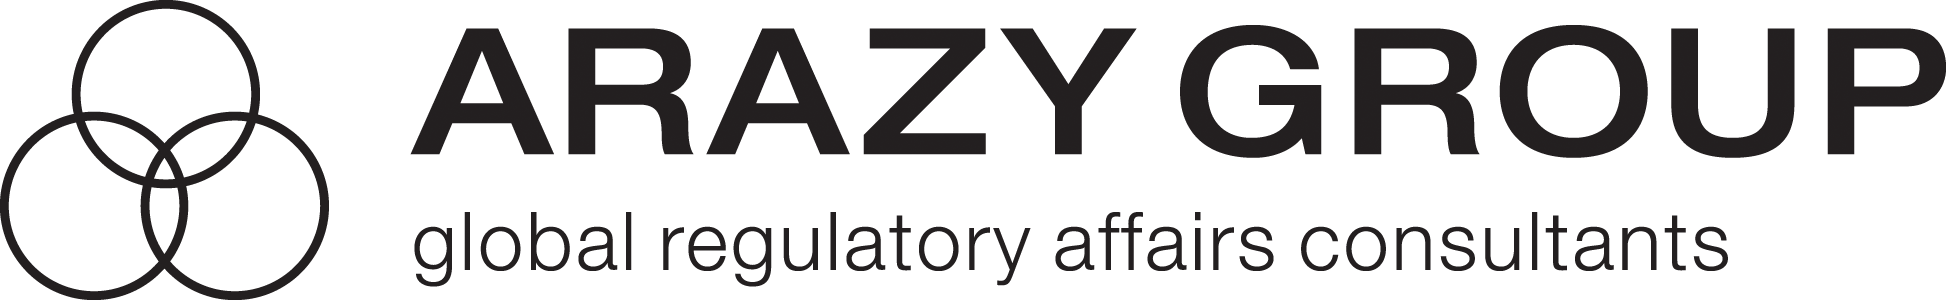 Arazy Group Consultants Inc.